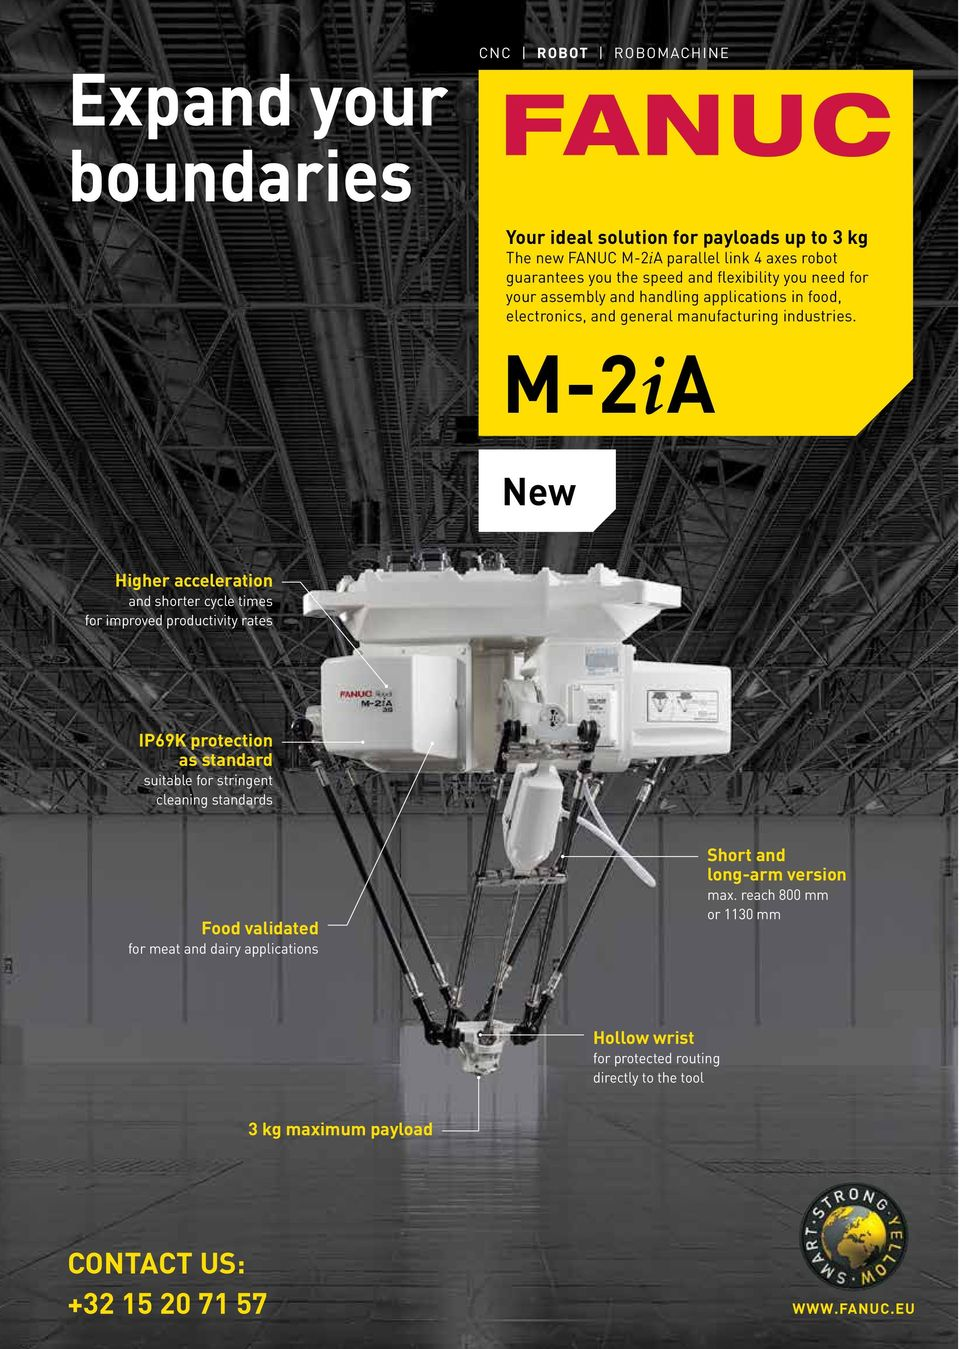 M-2ia new Higher acceleration and shorter cycle times for improved productivity rates IP69K protection as standard suitable for stringent cleaning standards food